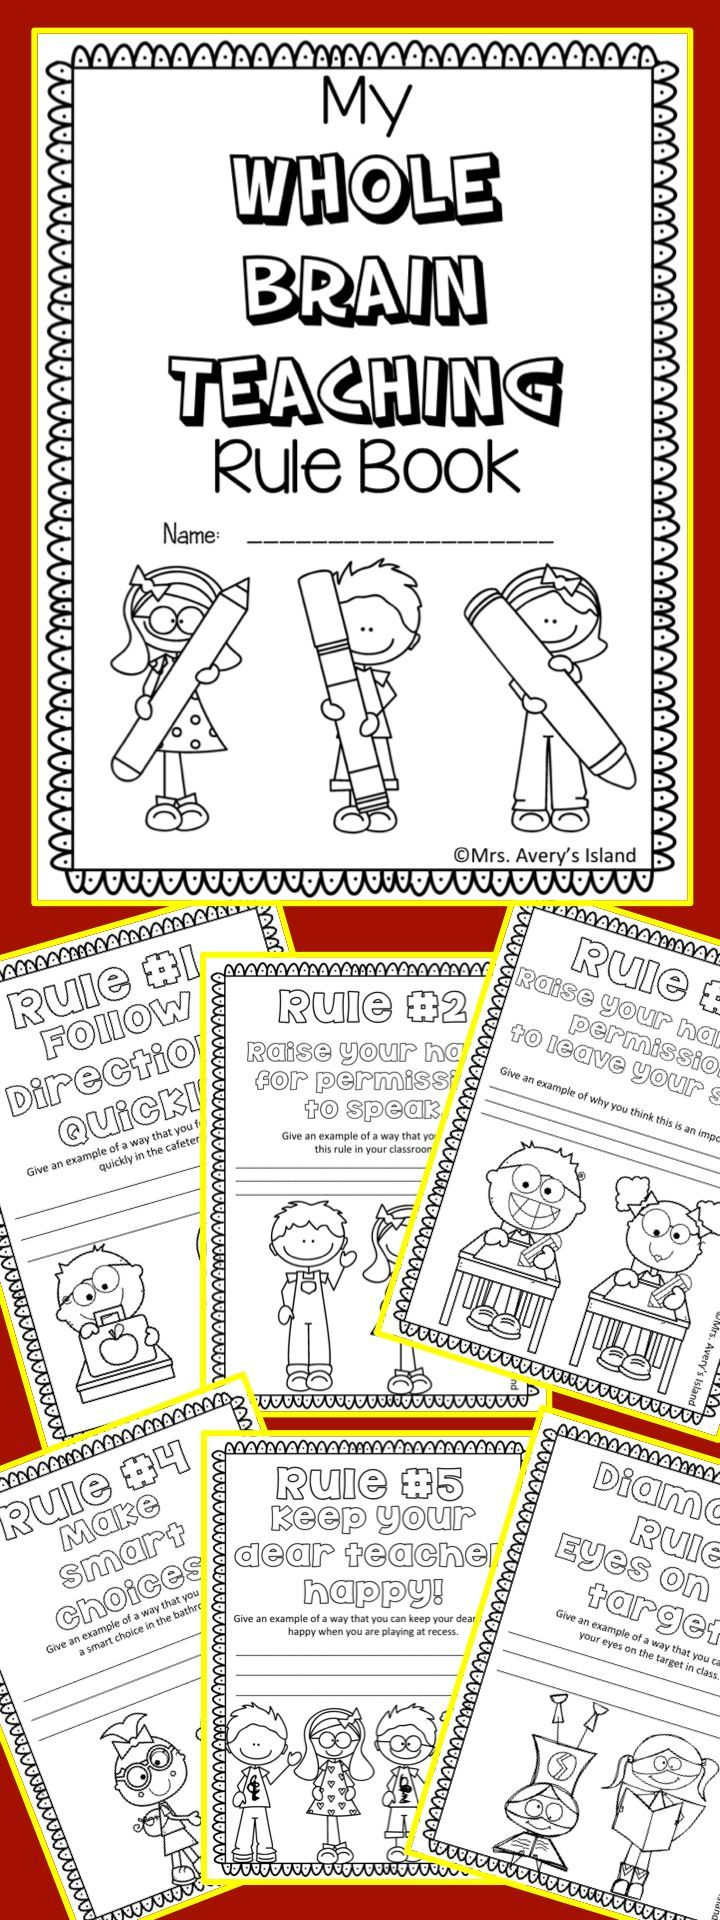 WHOLE BRAIN TEACHING FREEBIE!! Are you a Whole Brain teacher? If so, take advantage of this FREE Whole Brain Teaching rule booklet!  After teaching your students the WBT rules, your students can create a coloring booklet and provide a constructed response to the different rules! No doubt they will put their WHOLE HEART into their WHOLE BRAIN booklet!  Download at:  https://www.teacherspayteachers.com/Product/Whole-Brain-Teaching-Rule-Book-2021564